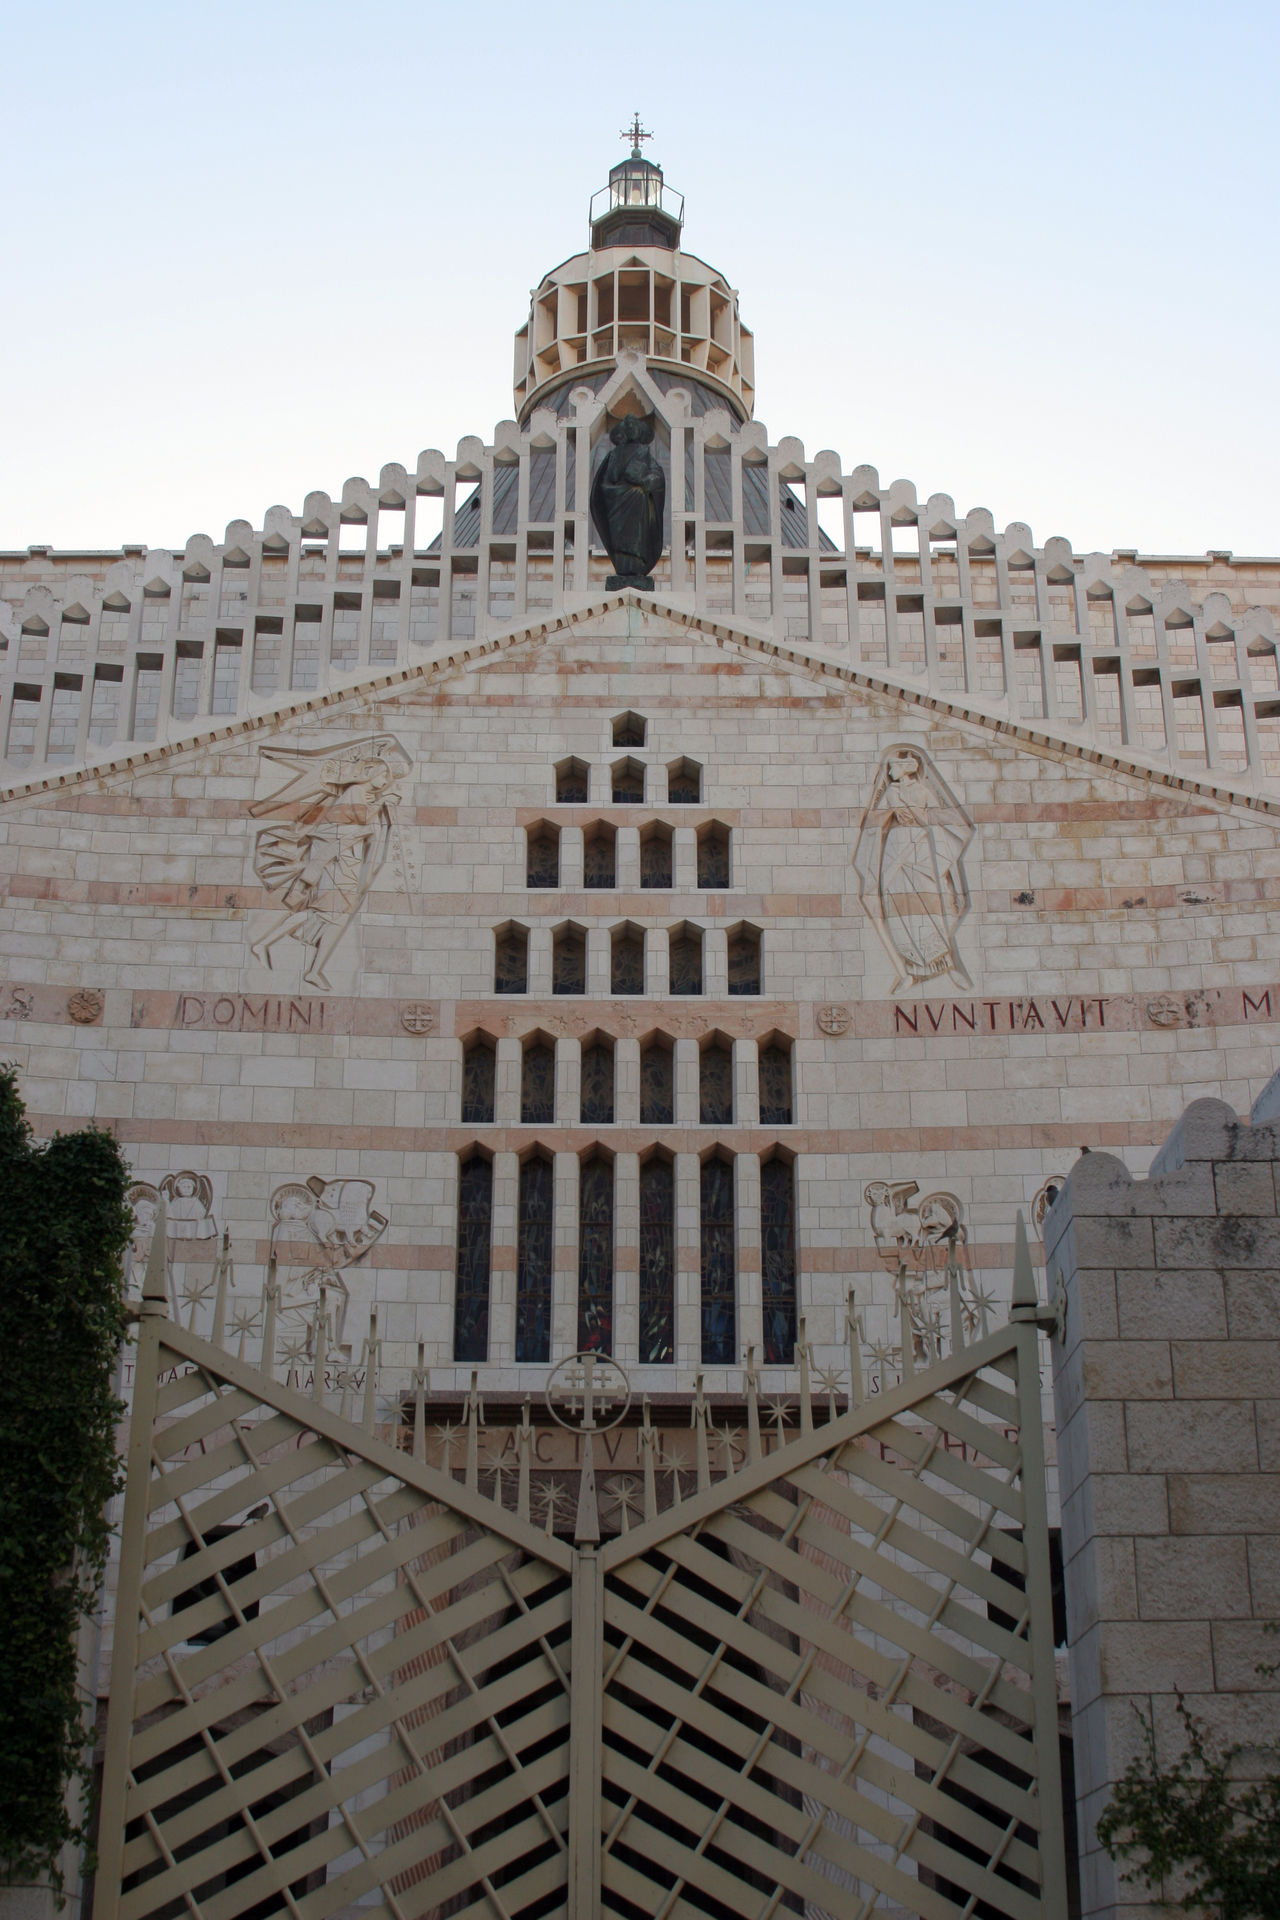 Basilica of the Annunciation, Nazareth, Israel Annunciation Archangel Gabriel Architecture Basilica Biblical  Building Exterior Built Structure Christianity Church Dome Franciscan History Holy Land Israel Middle East Nazareth Palestine Religion Sacred Shrine Spirituality Travel Destinations Virgin Mary Worship